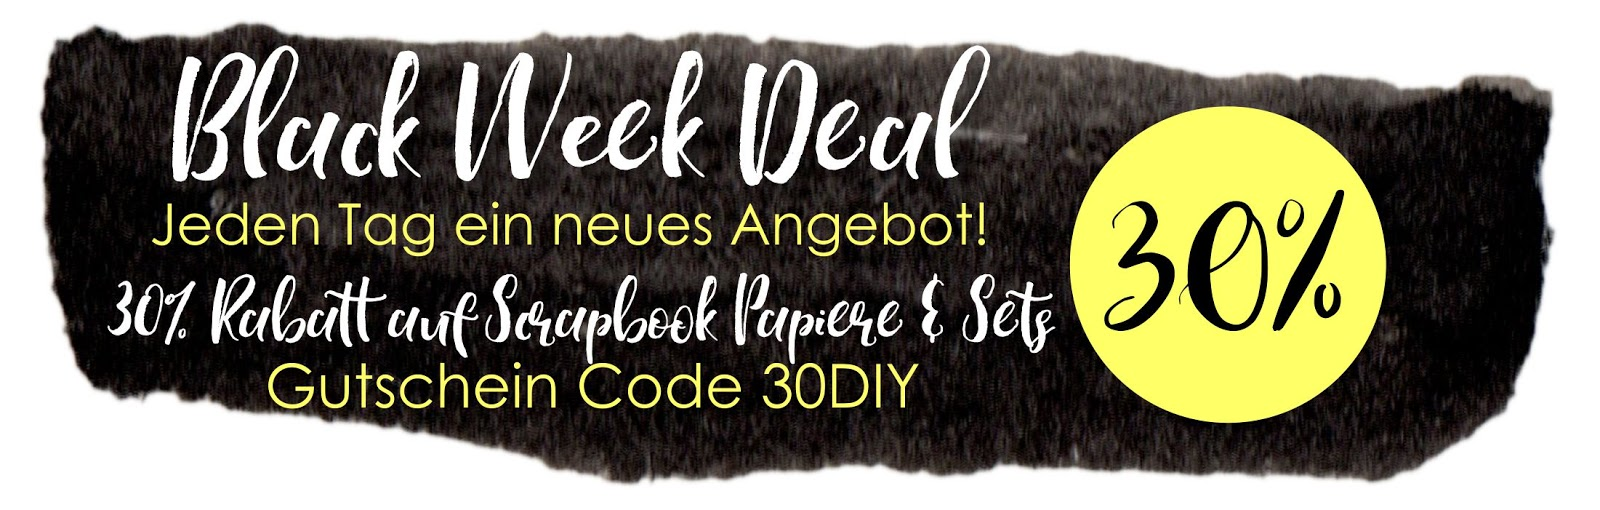 Black Week Deal -30% auf Scrapbookpapier & Kits in 12x12 | made-by ...